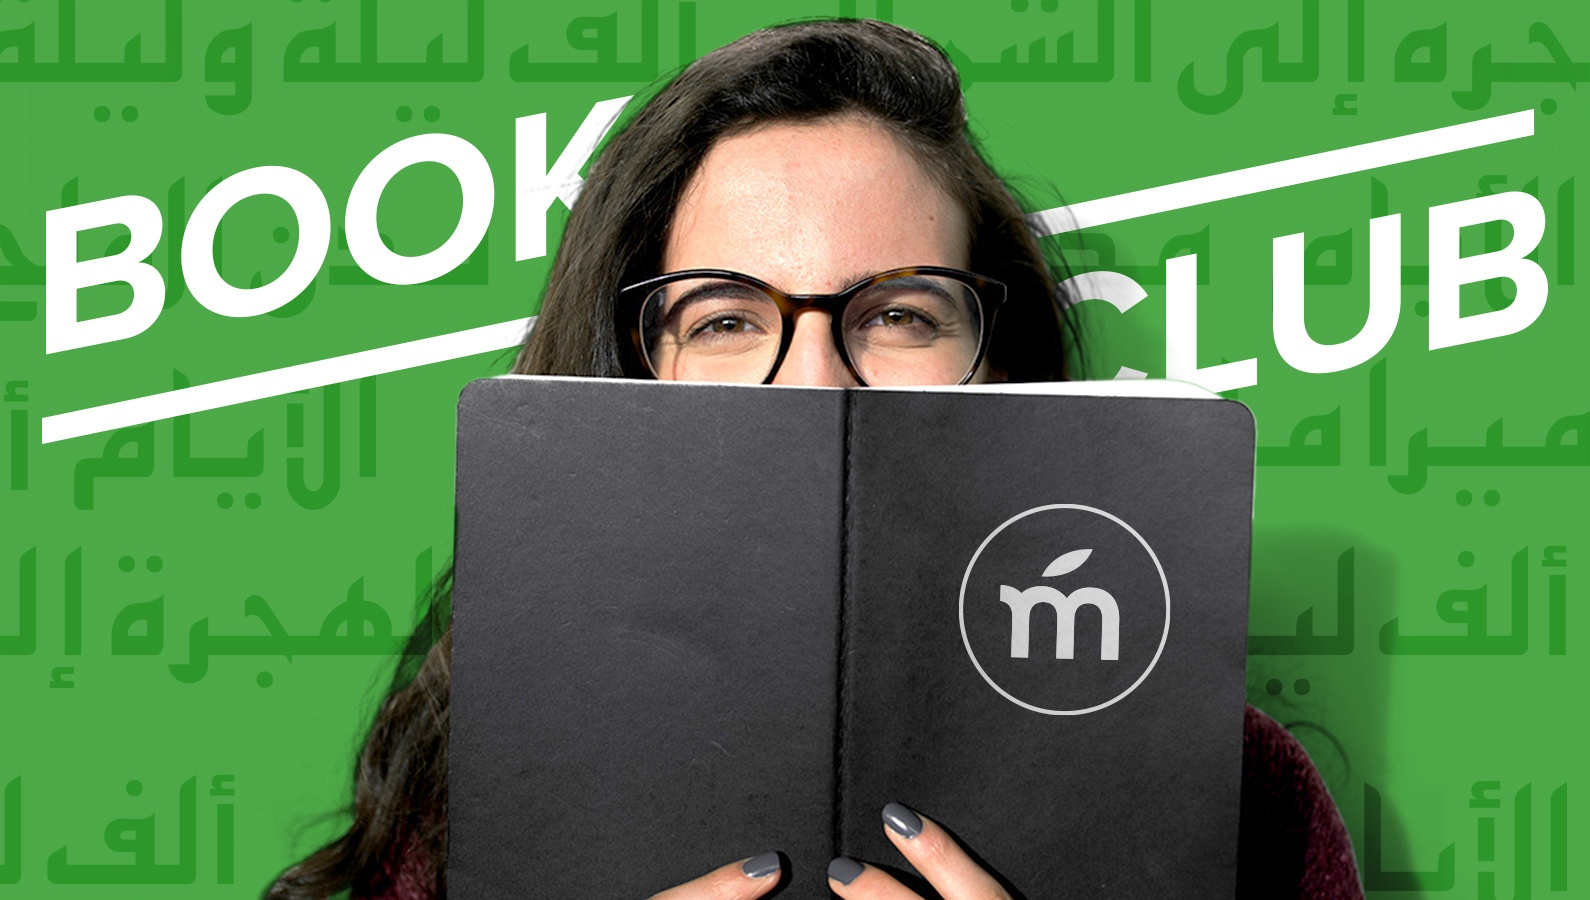 Aya Dhibette reading an Arabic book for March Book Club.